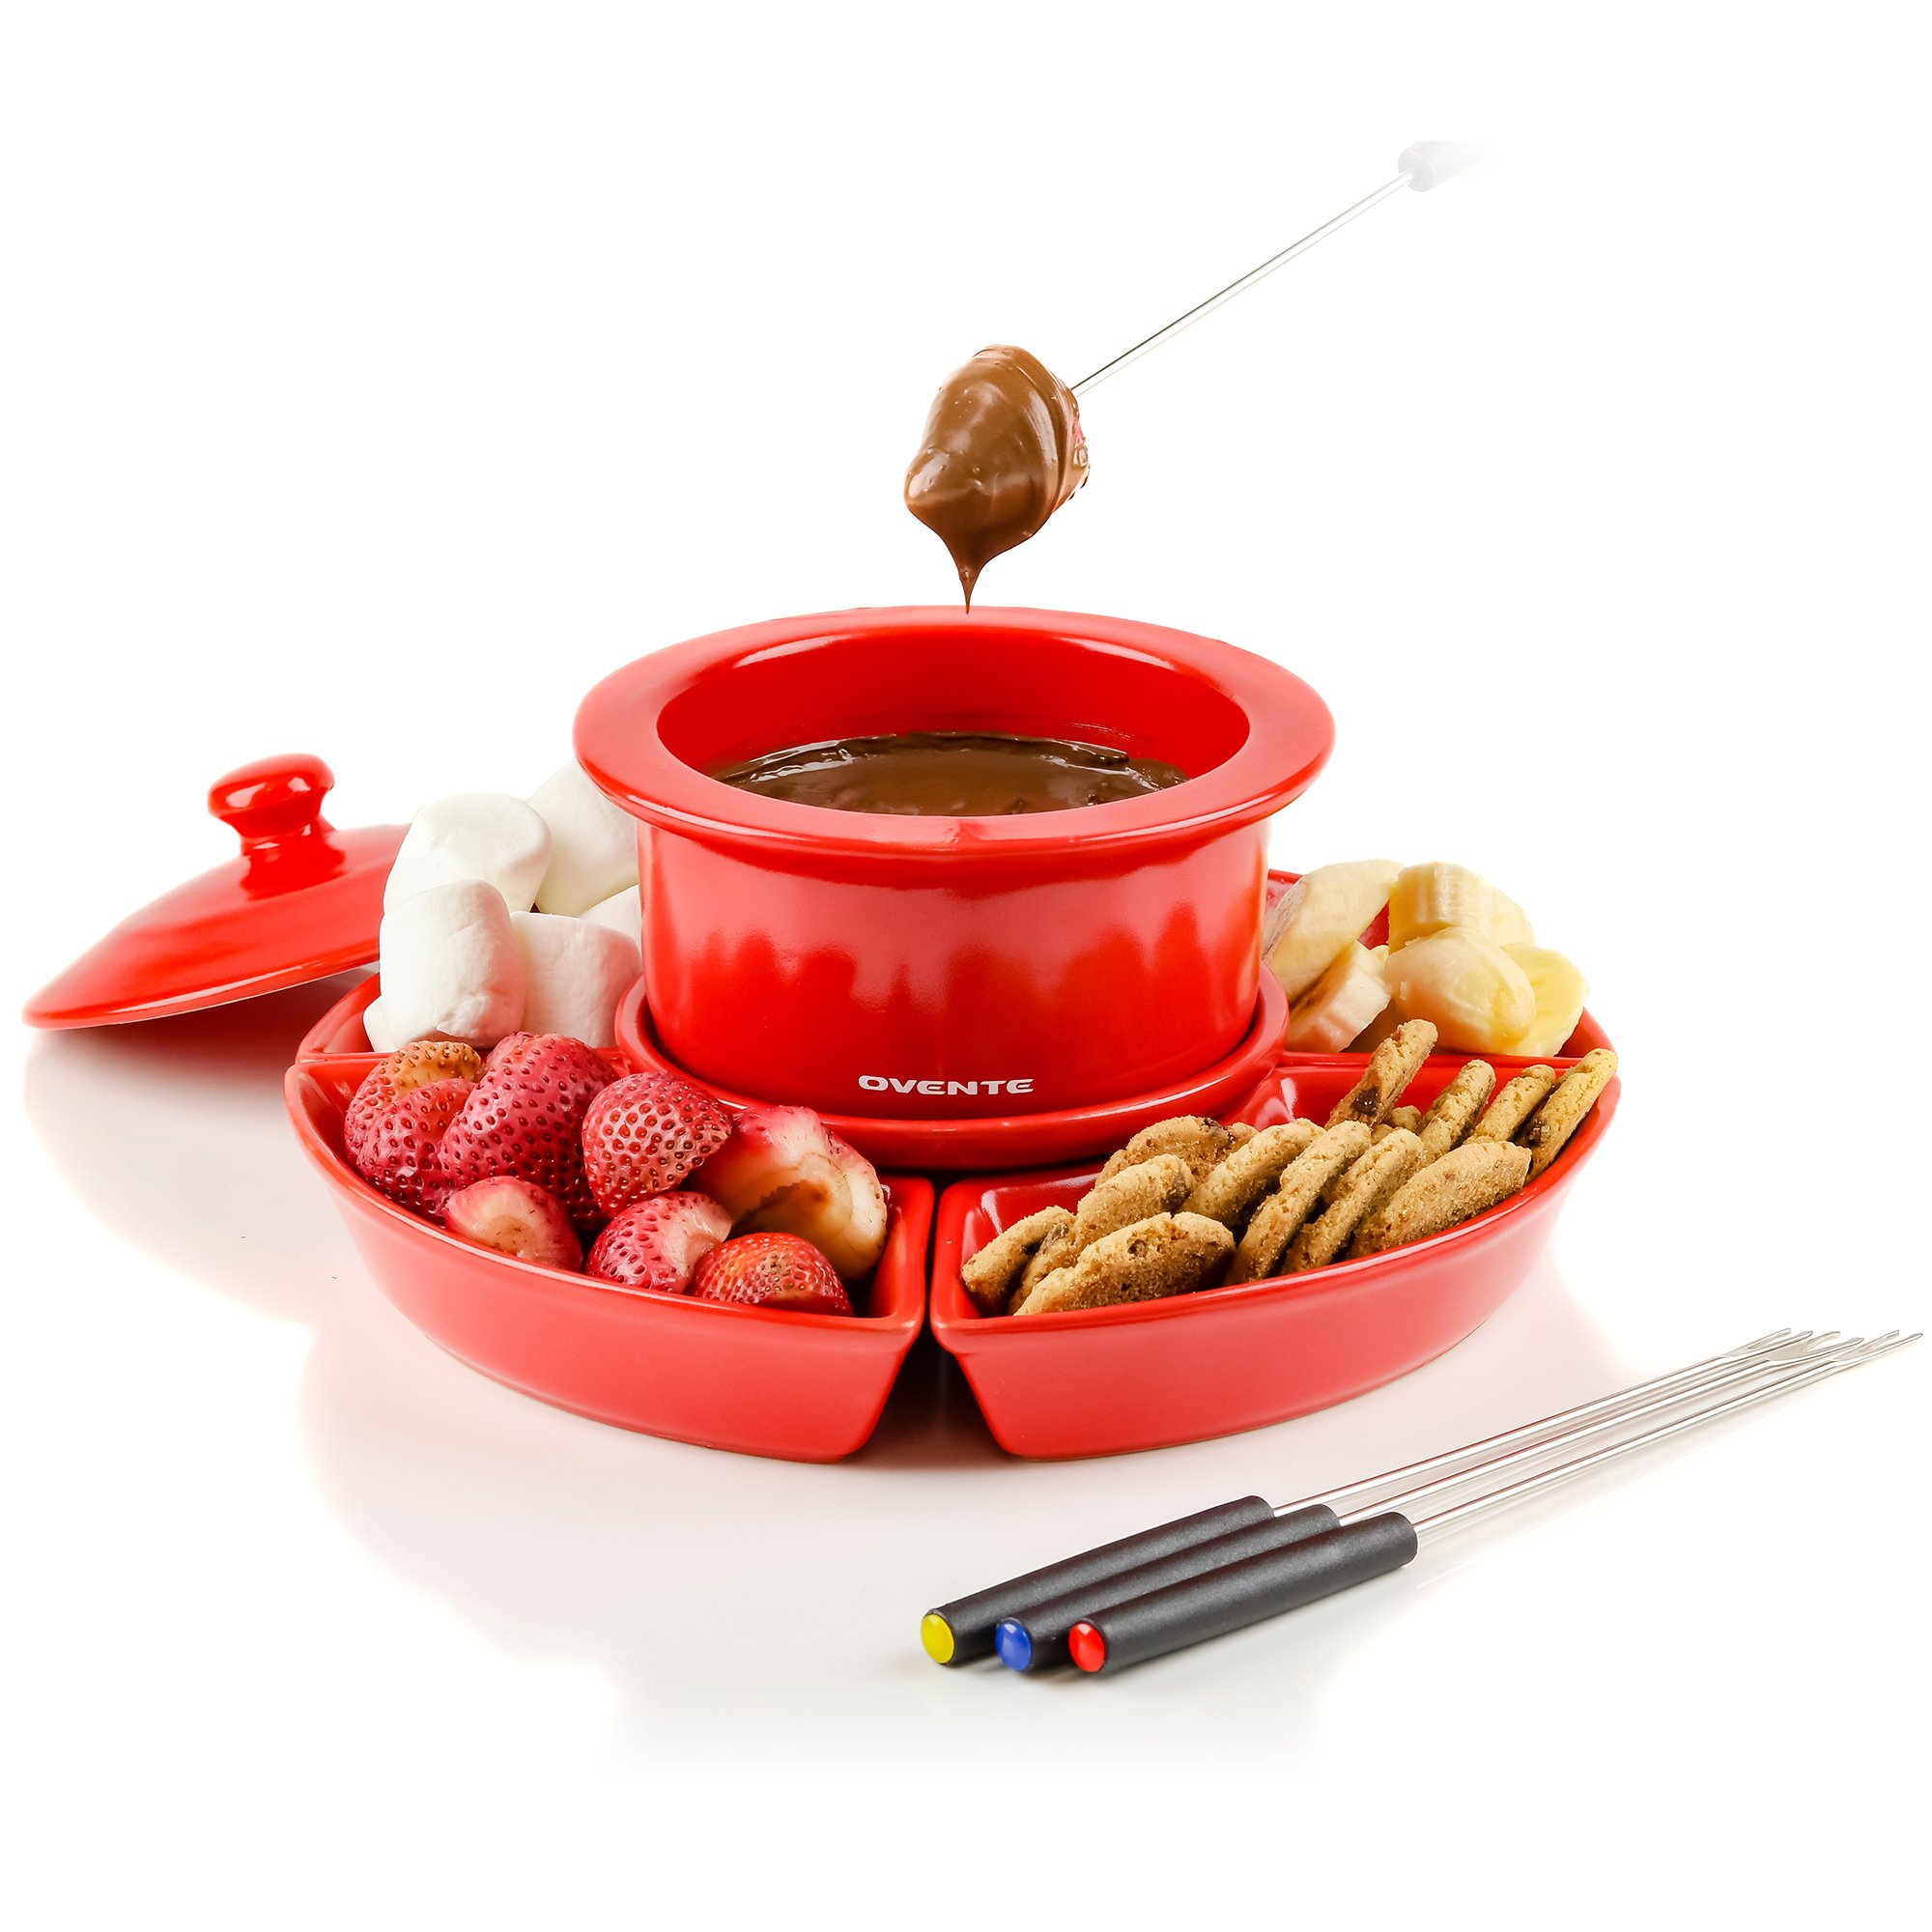 OVENTE CFC317R Electric Cheese/Chocolate Fondue Melting Pots and Warmer Set, 1 Liter, Red by OVENTE